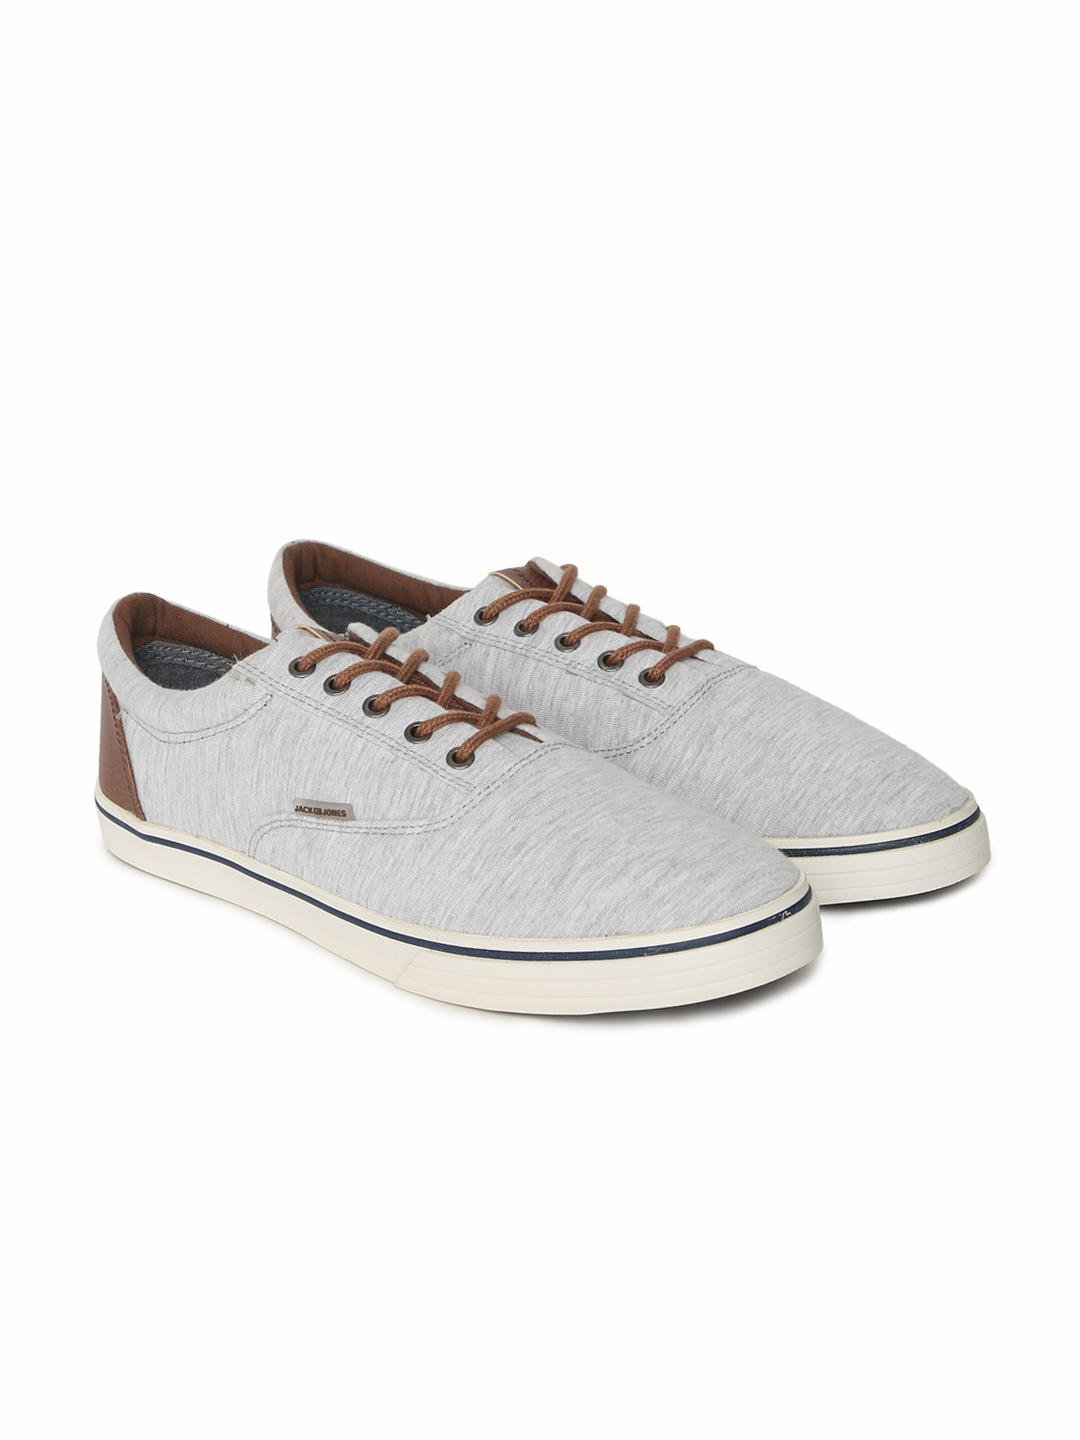 Jack For Jones Sneakers Casual Buy amp; Men Grey Jfw Shoes Vision vqEnfdwpx